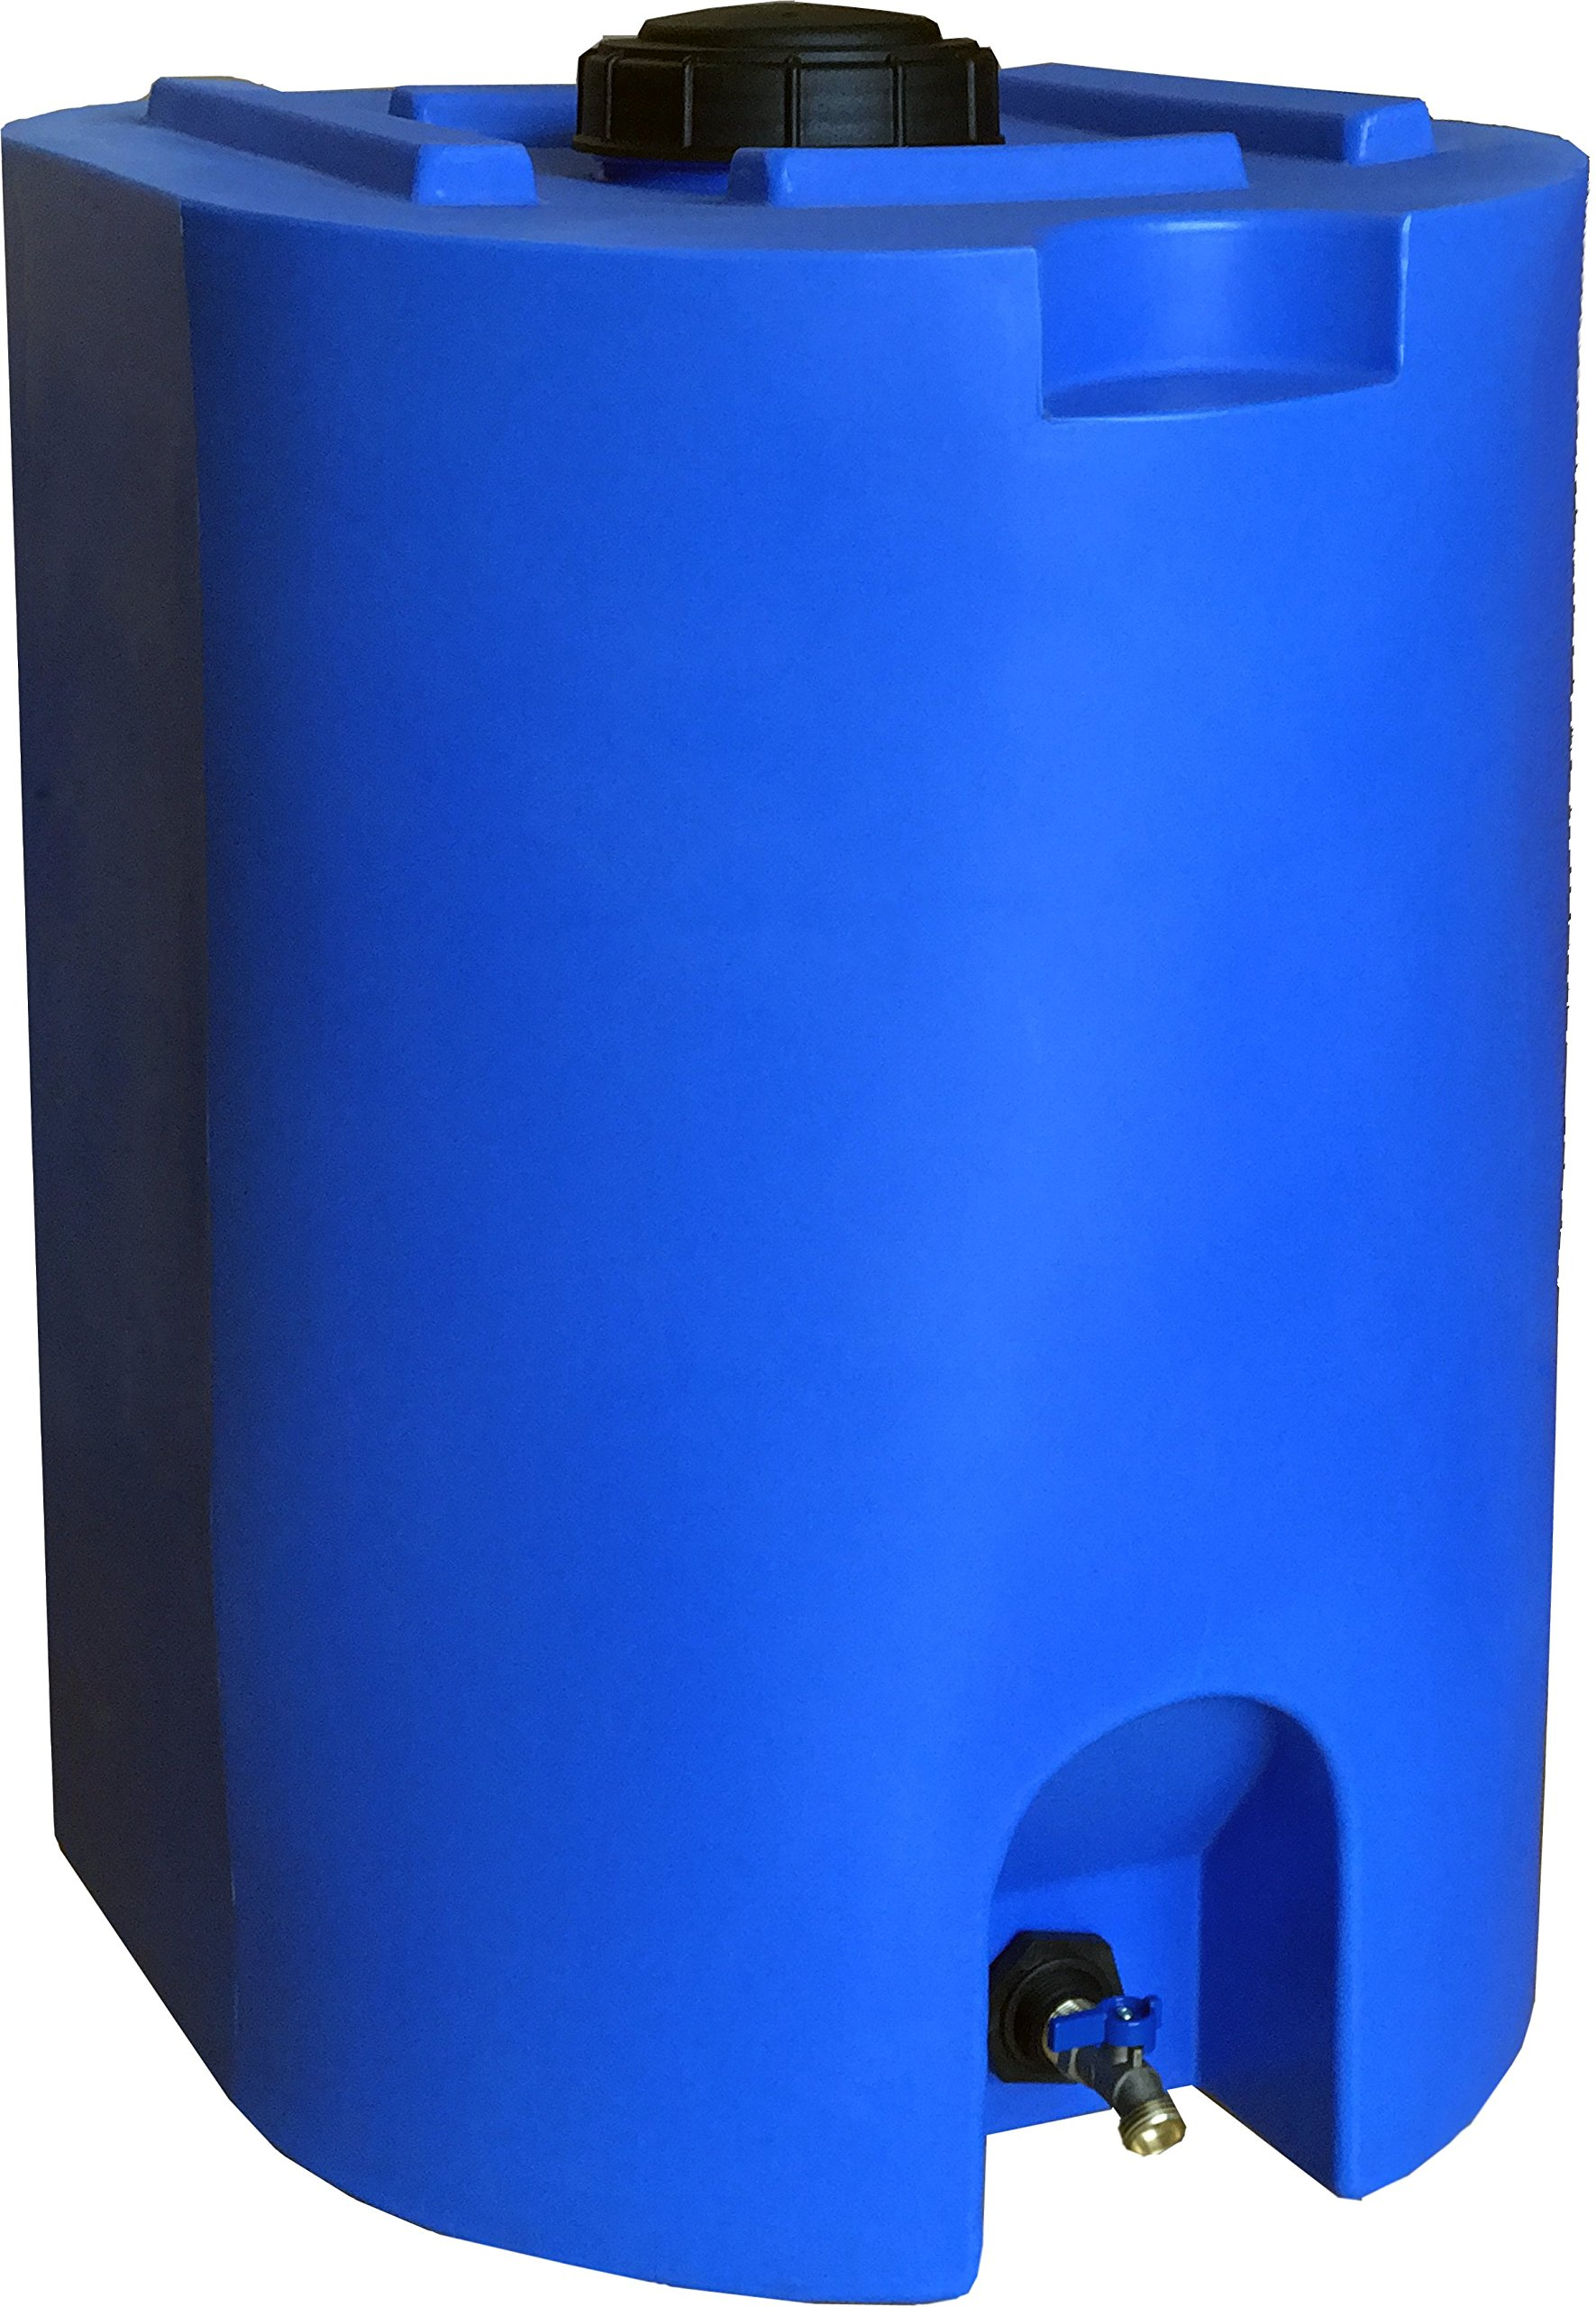 Blue 55 Gallon Water Storage Tank by WaterPrepared - Emergency Water Barrel Container with Spigot for Emergency Disaster Preparedness - Stackable, Space Saving - BPA Free by WaterPrepared